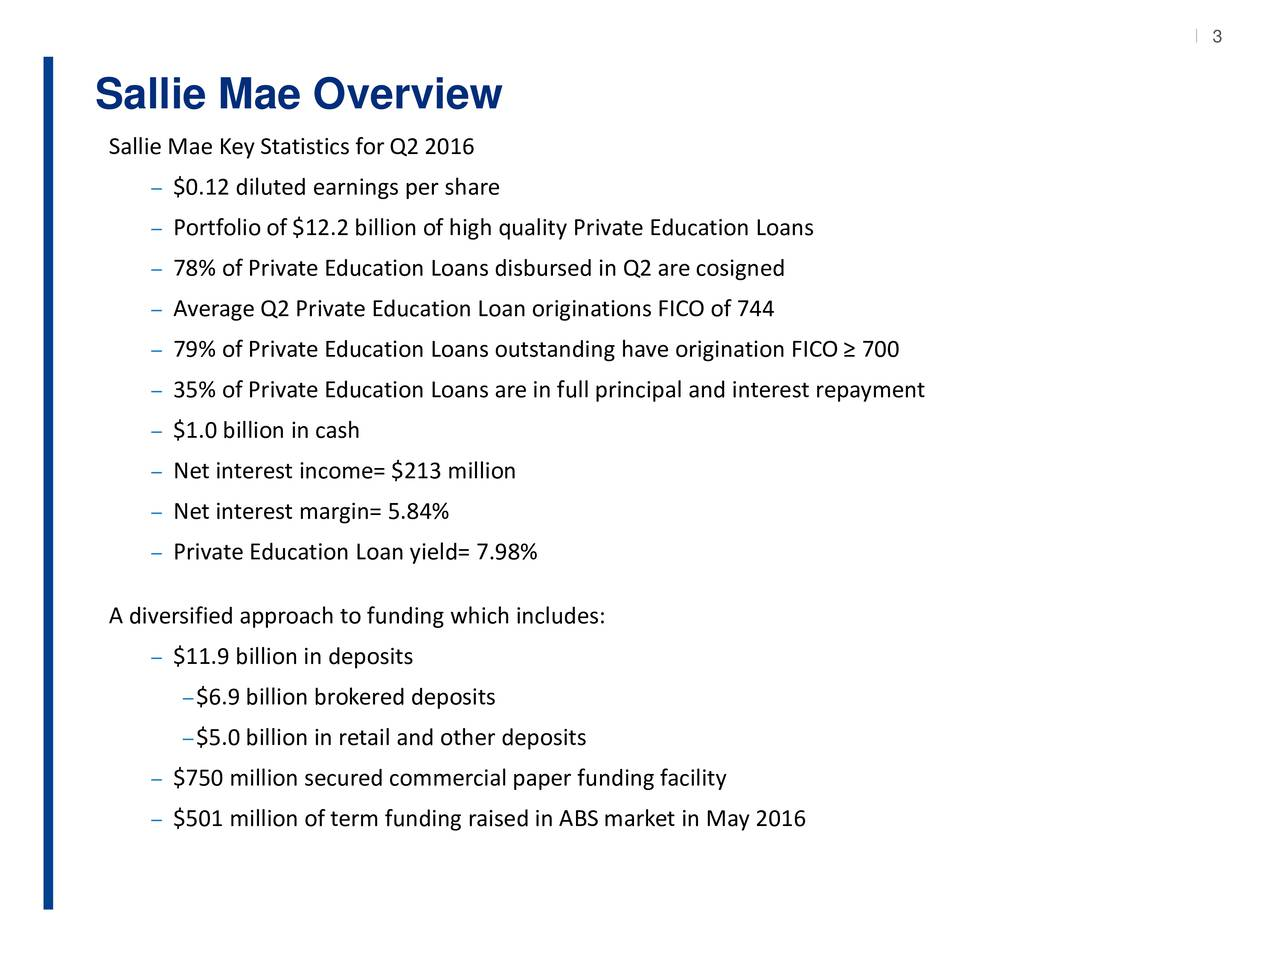 Sallie Mae Overview Sallie Mae Key Statistics for Q2 2016 $0.12 diluted earnings per share Portfolio of $12.2 billion of high quality Private Education Loans 78% of Private Education Loans disbursed in Q2 are cosigned Average Q2 Private Education Loan originations FICO of 744 79% of Private Education Loans outstanding have origination FICO  700 35% of Private Education Loans are in full principal and interest repayment $1.0 billion in cash Net interest income= $213 million Net interest margin= 5.84% Private Education Loan yield= 7.98% A diversified approach to funding which includes: $11.9 billion in deposits $6.9 billion brokered deposits $5.0 billion in retail and other deposits $750 million secured commercial paper funding facility $501 million of term funding raised in ABS market in May 2016